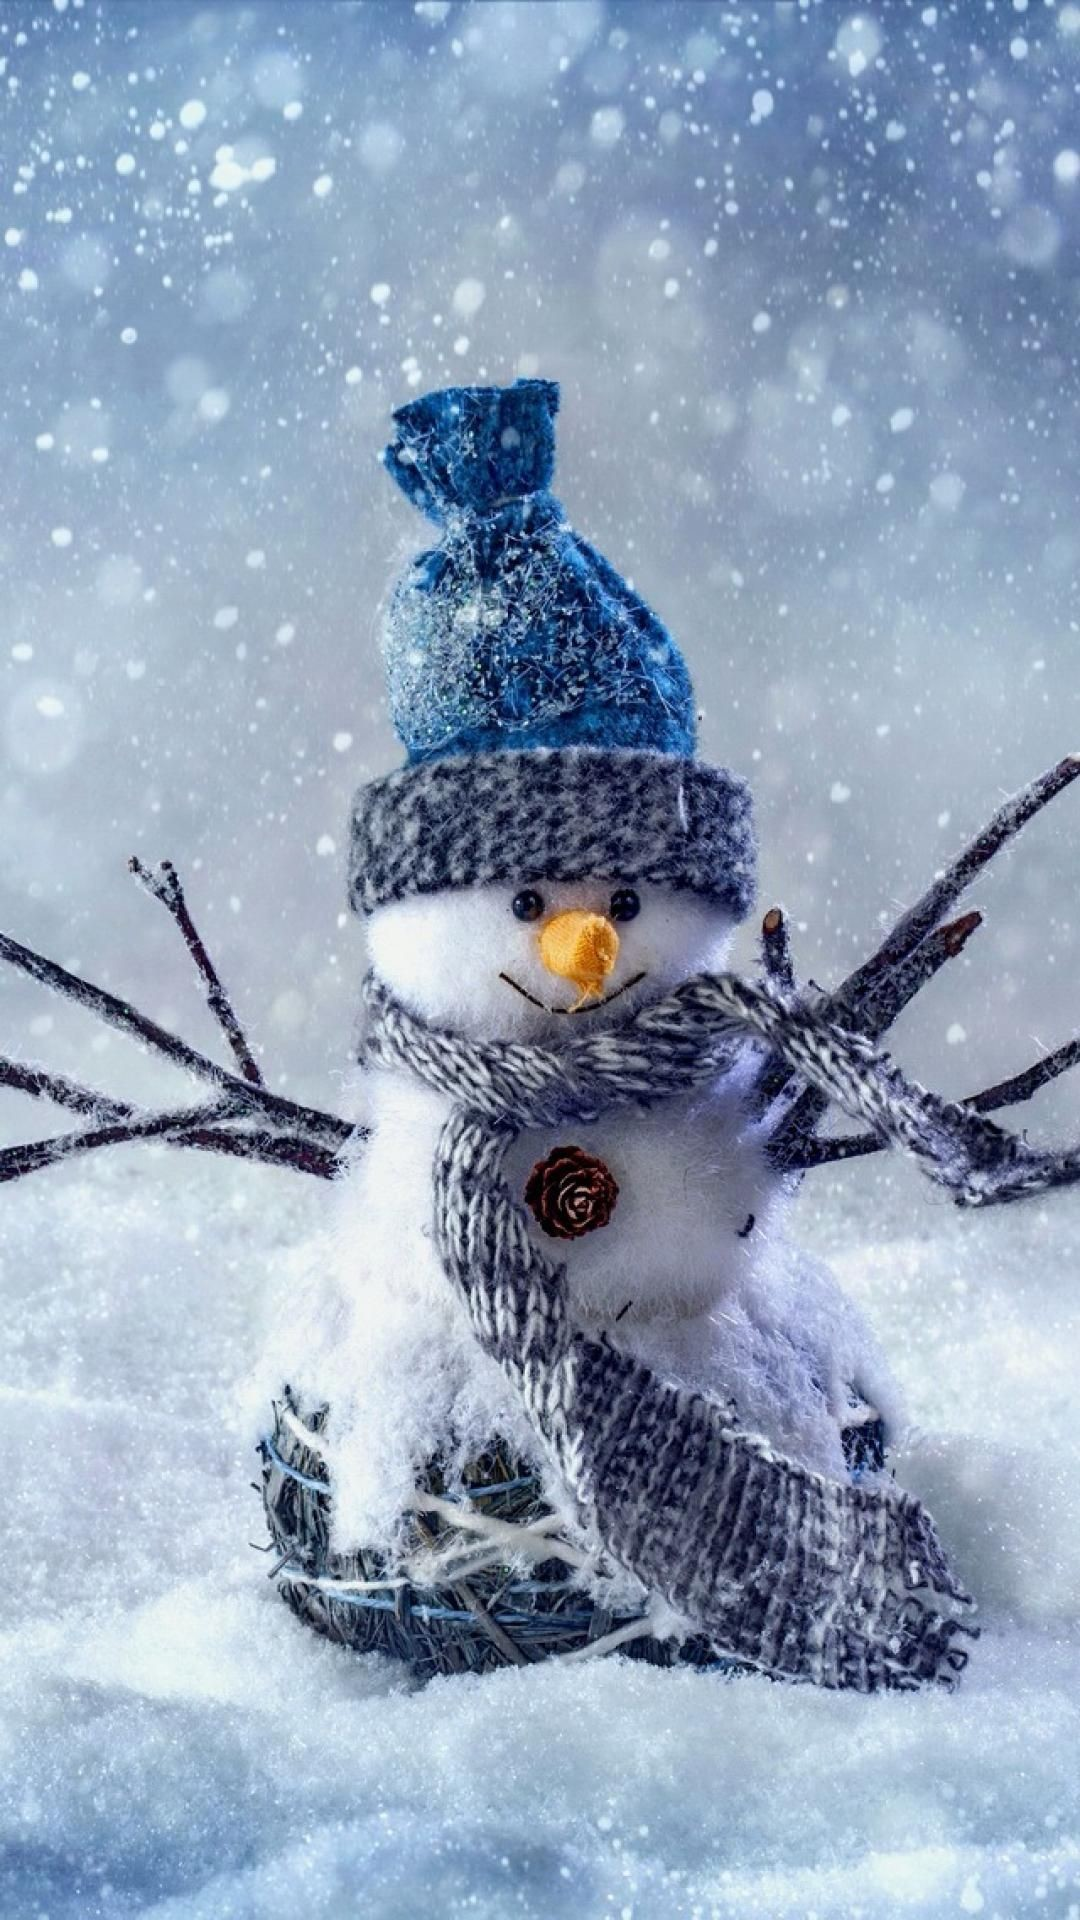 1080x1920 Snowman - Winter - Blue Christmas - Originally from - We Heart It